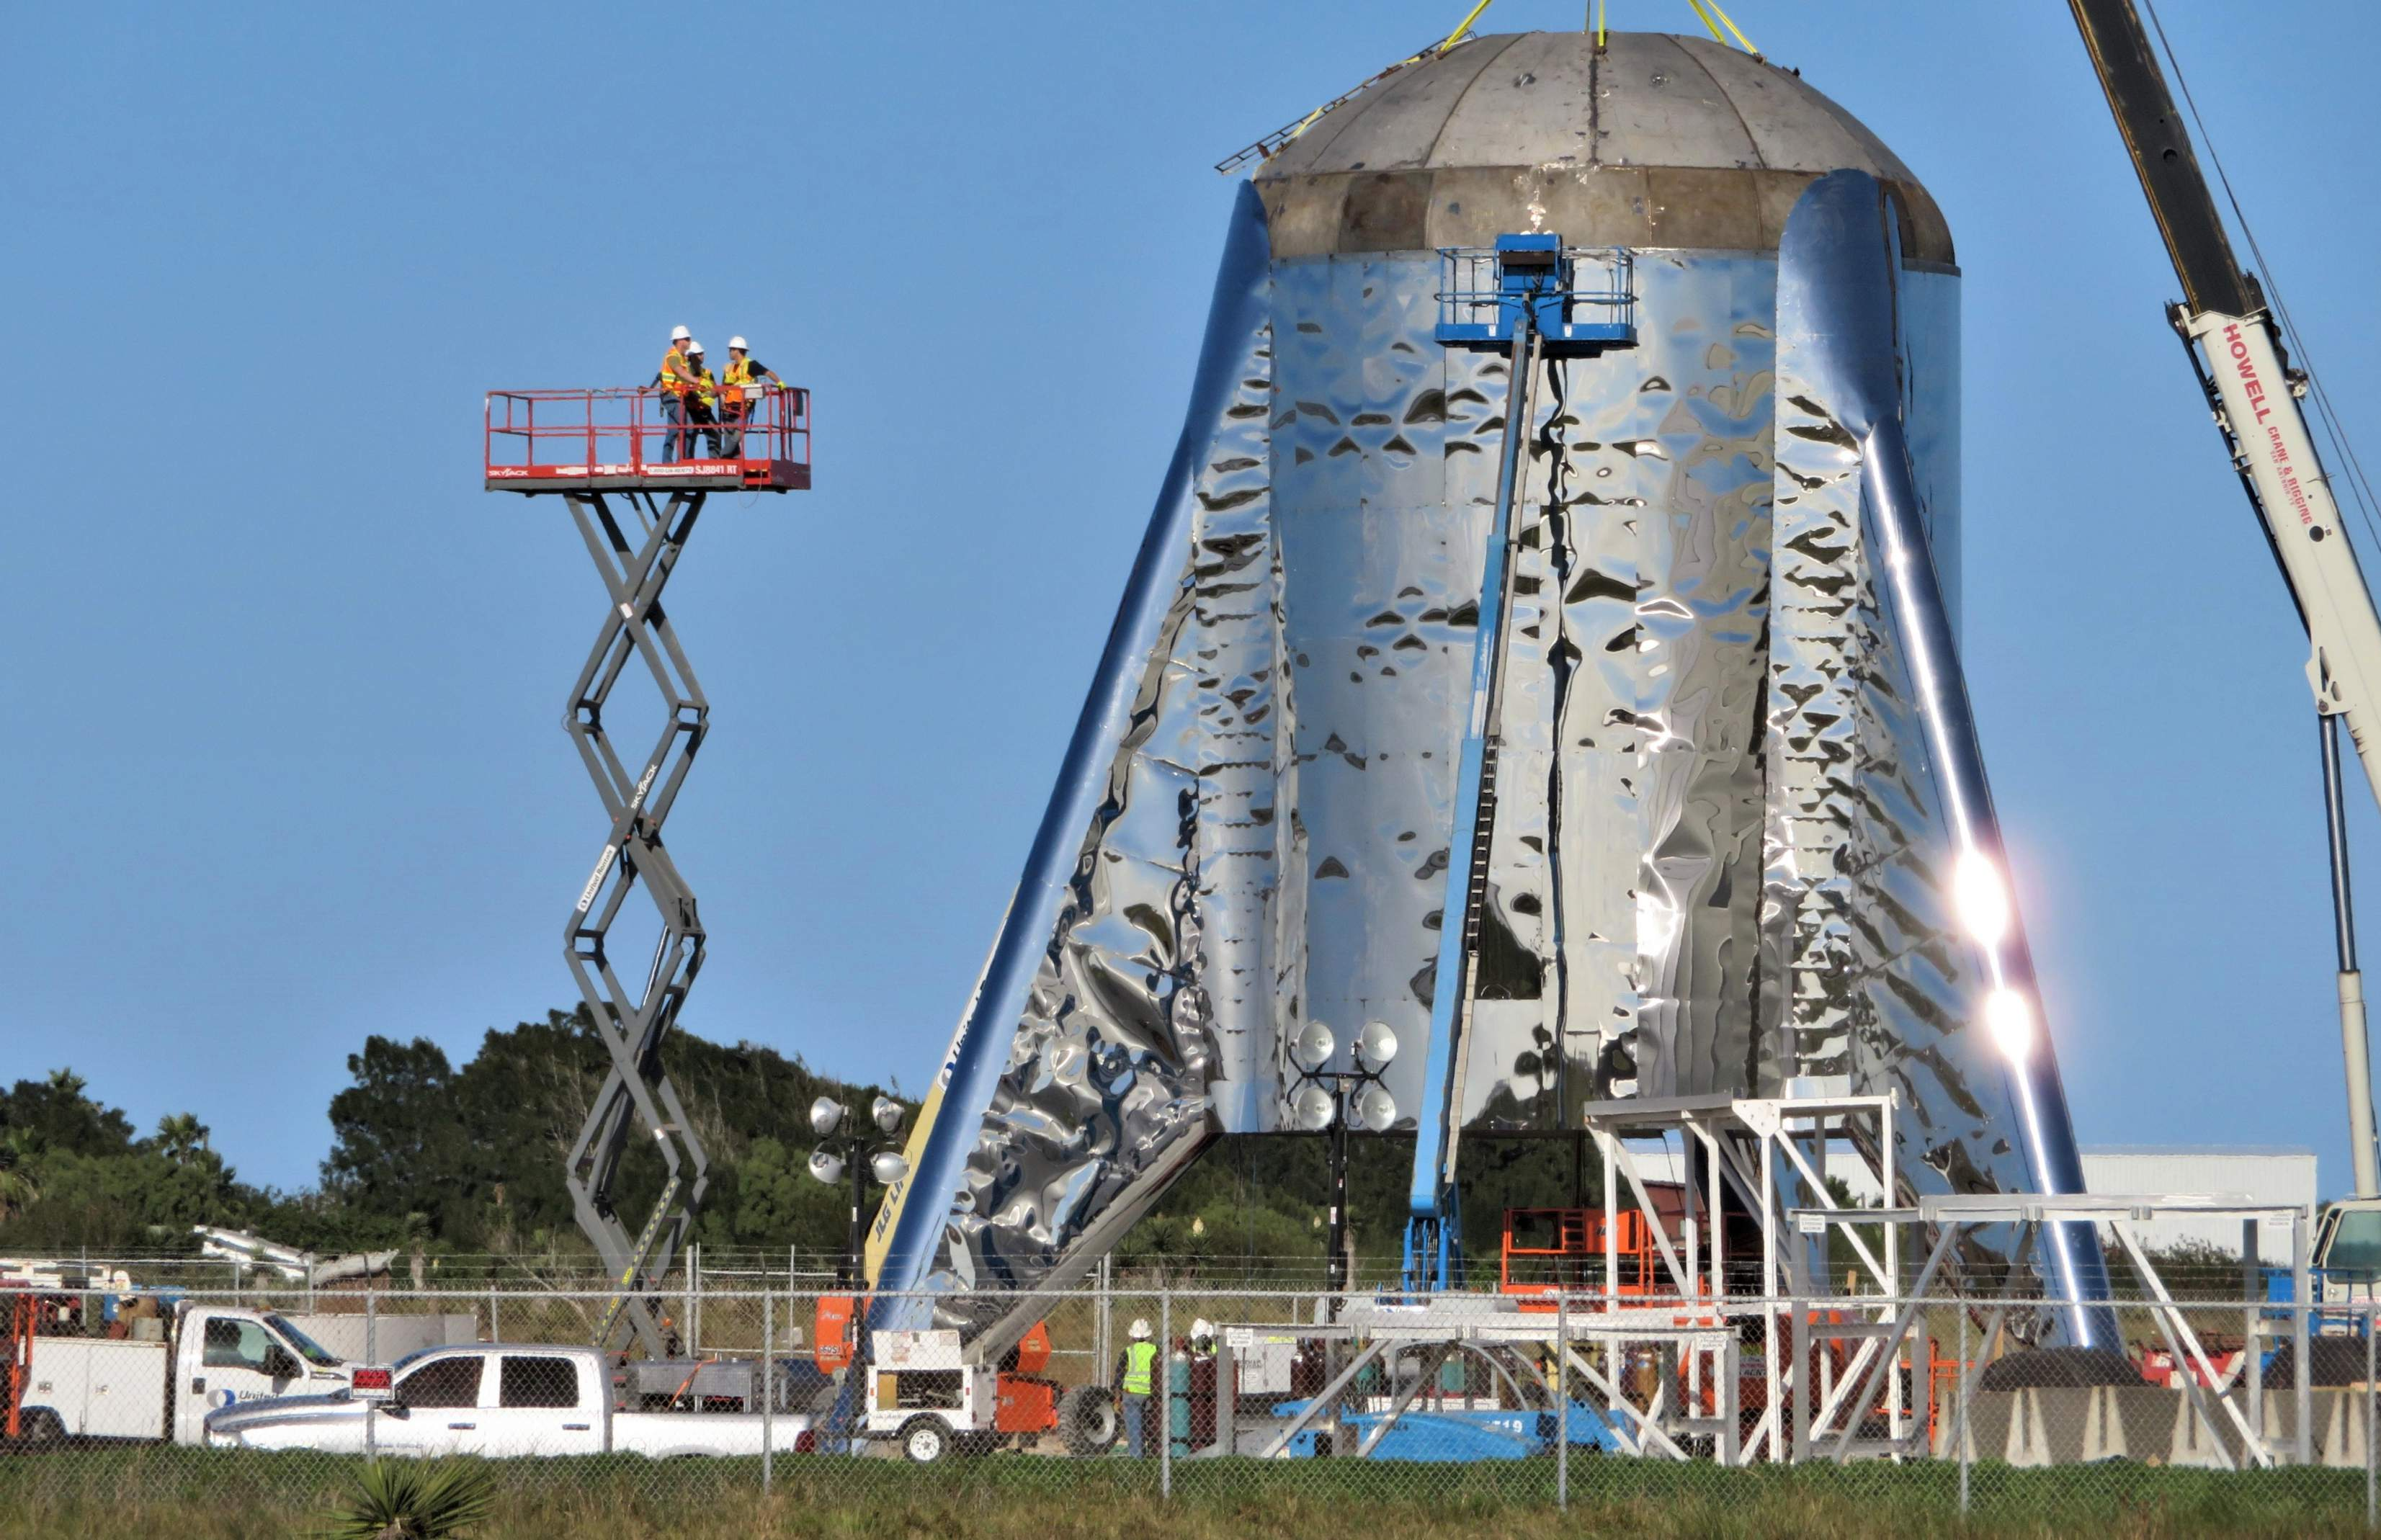 Boca Chica Starship final dome install 012419 (NASASpaceflight – bocachicagal) 3 crop (c)